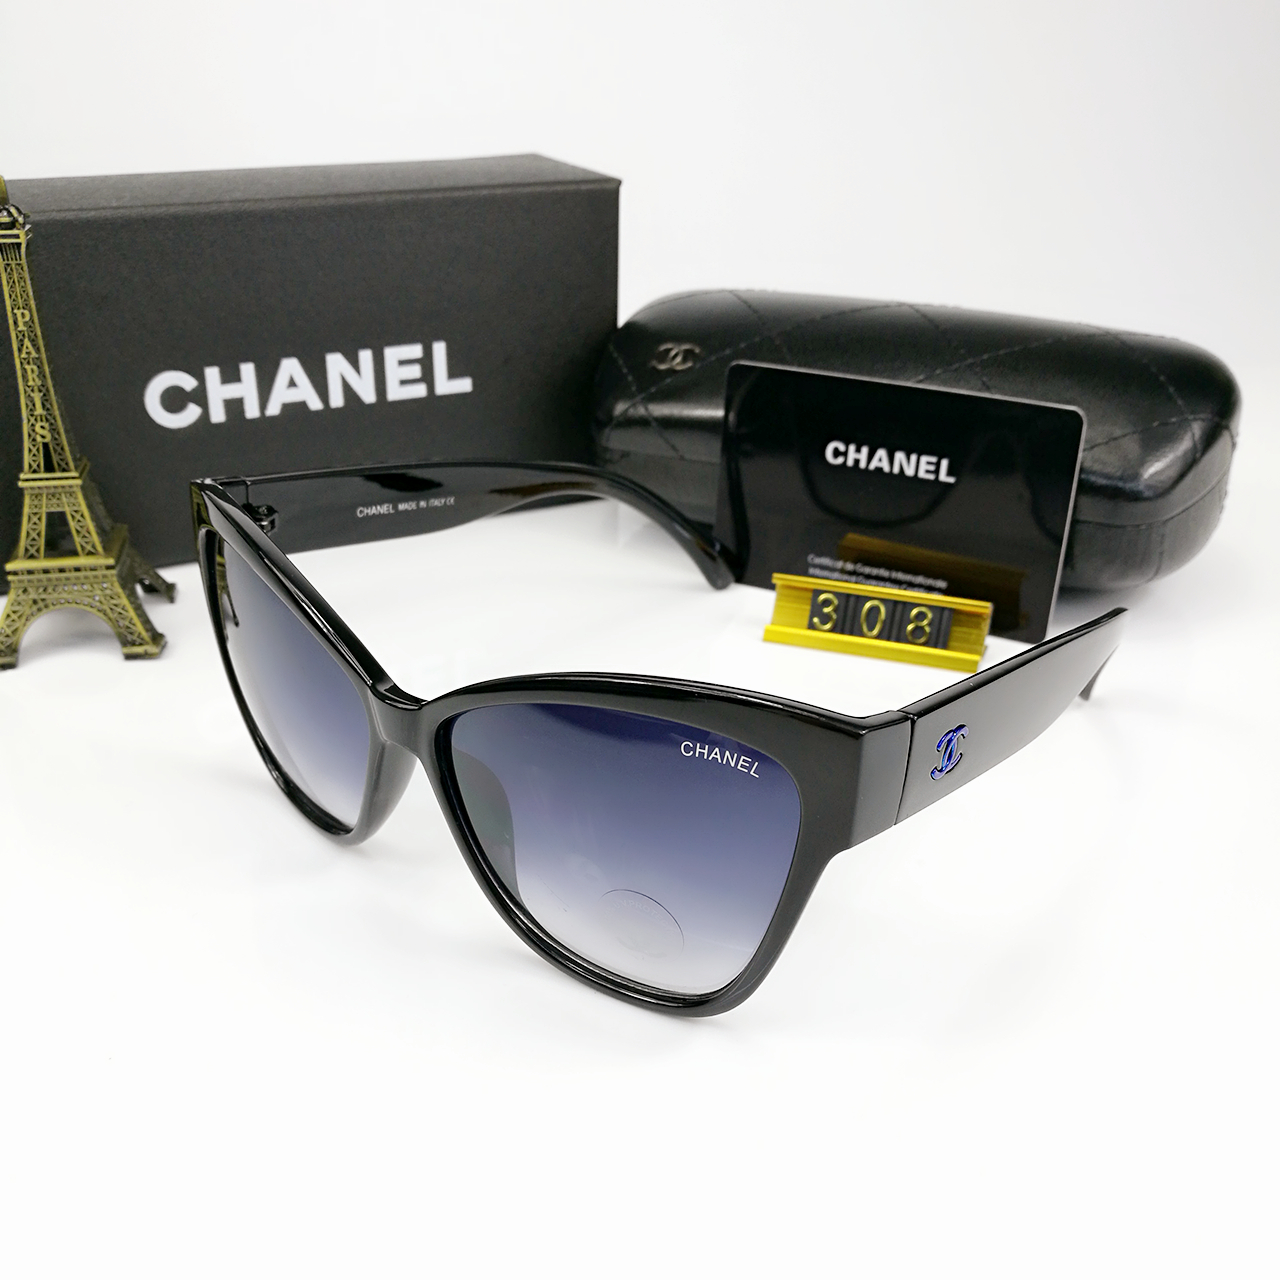 Replica Chanel Sunglasses #275573 express shipping to ...